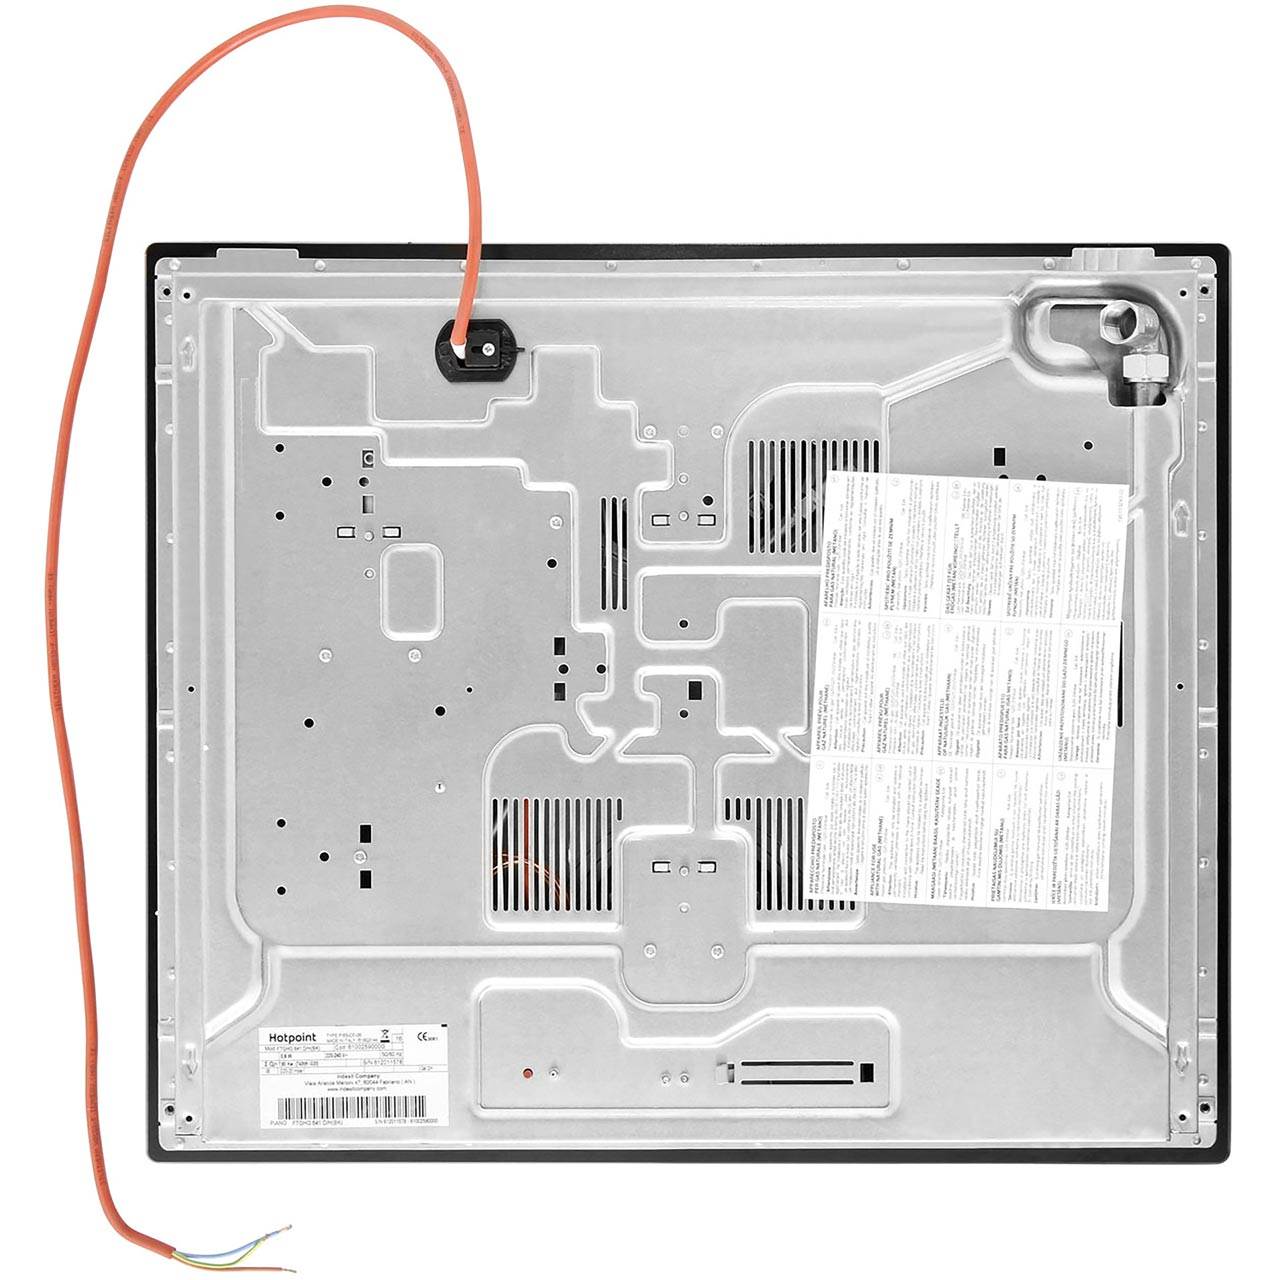 Ftghg641d H Bk Hotpoint 60cm Gas Hob Black Air Conditioner Wiring Diagram